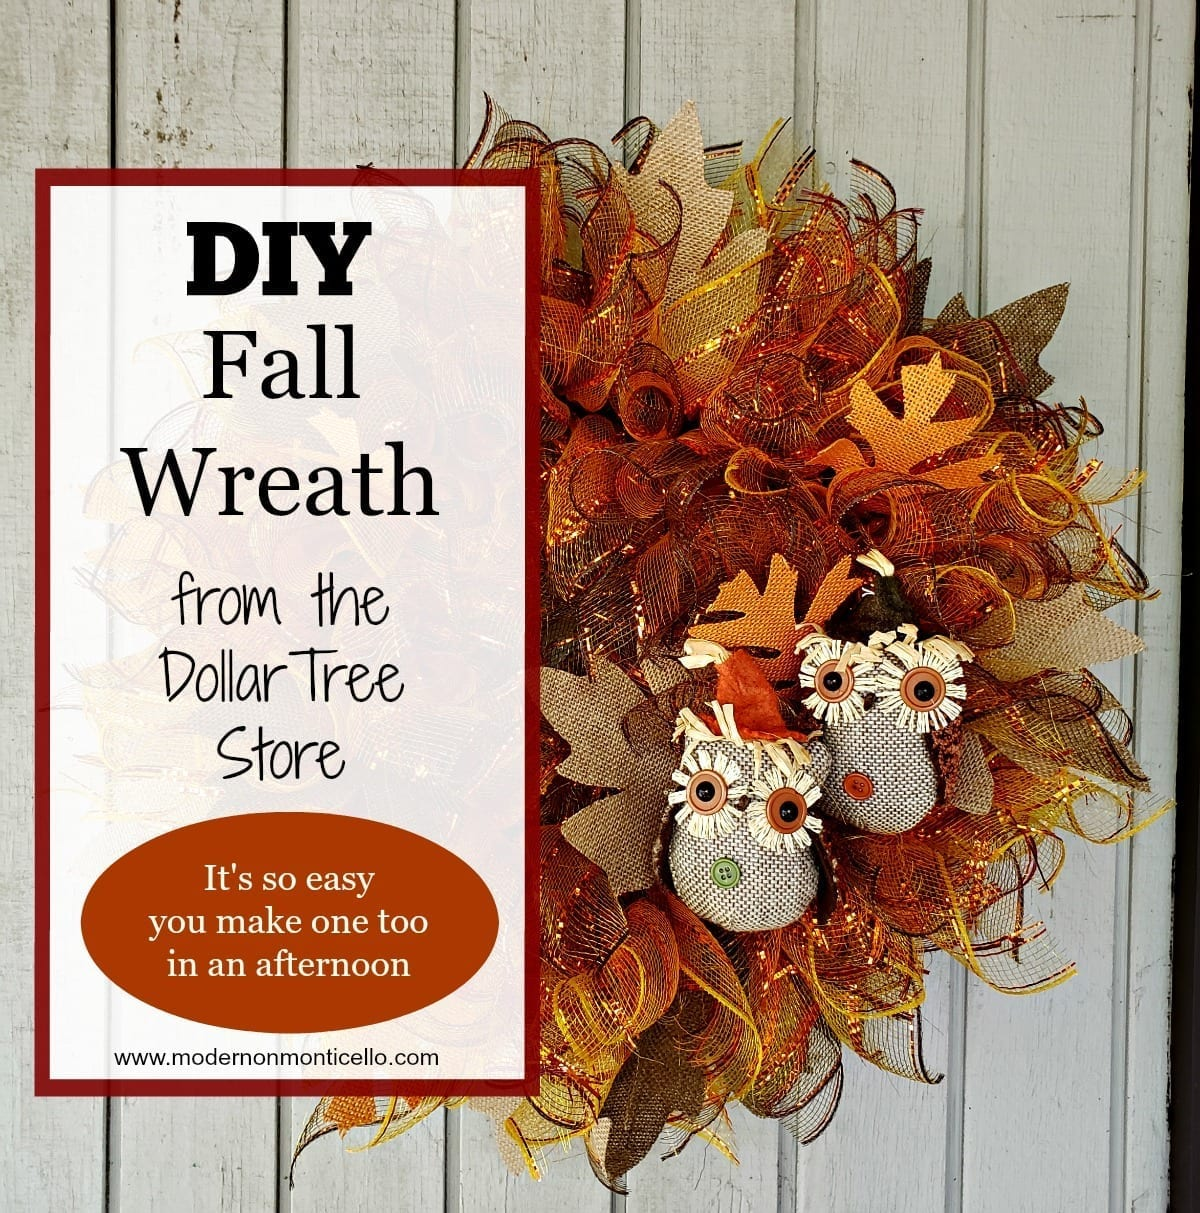 Diy Fall Wreath With Adorable Owls From The Dollar Tree Modern On Monticello